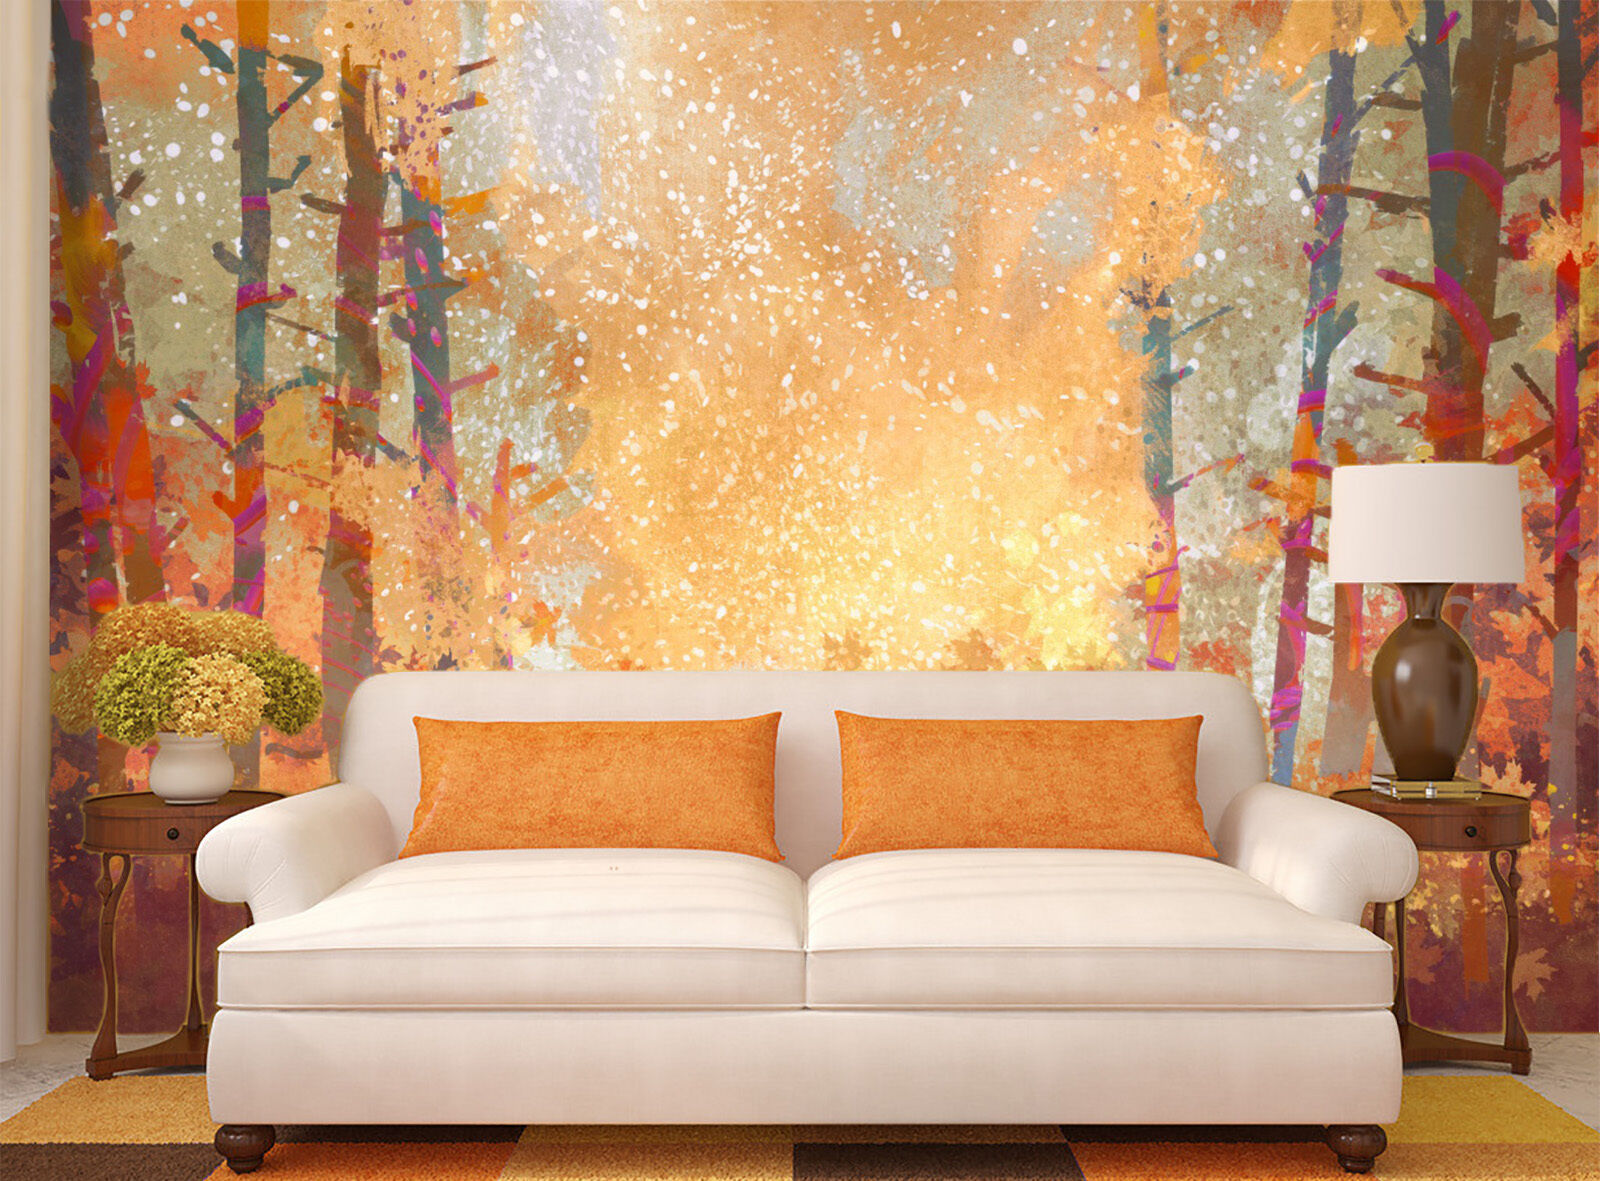 3D Fire Graffiti Shrubbery 42 Wall Paper Wall Print Decal Wall Deco Indoor Wall